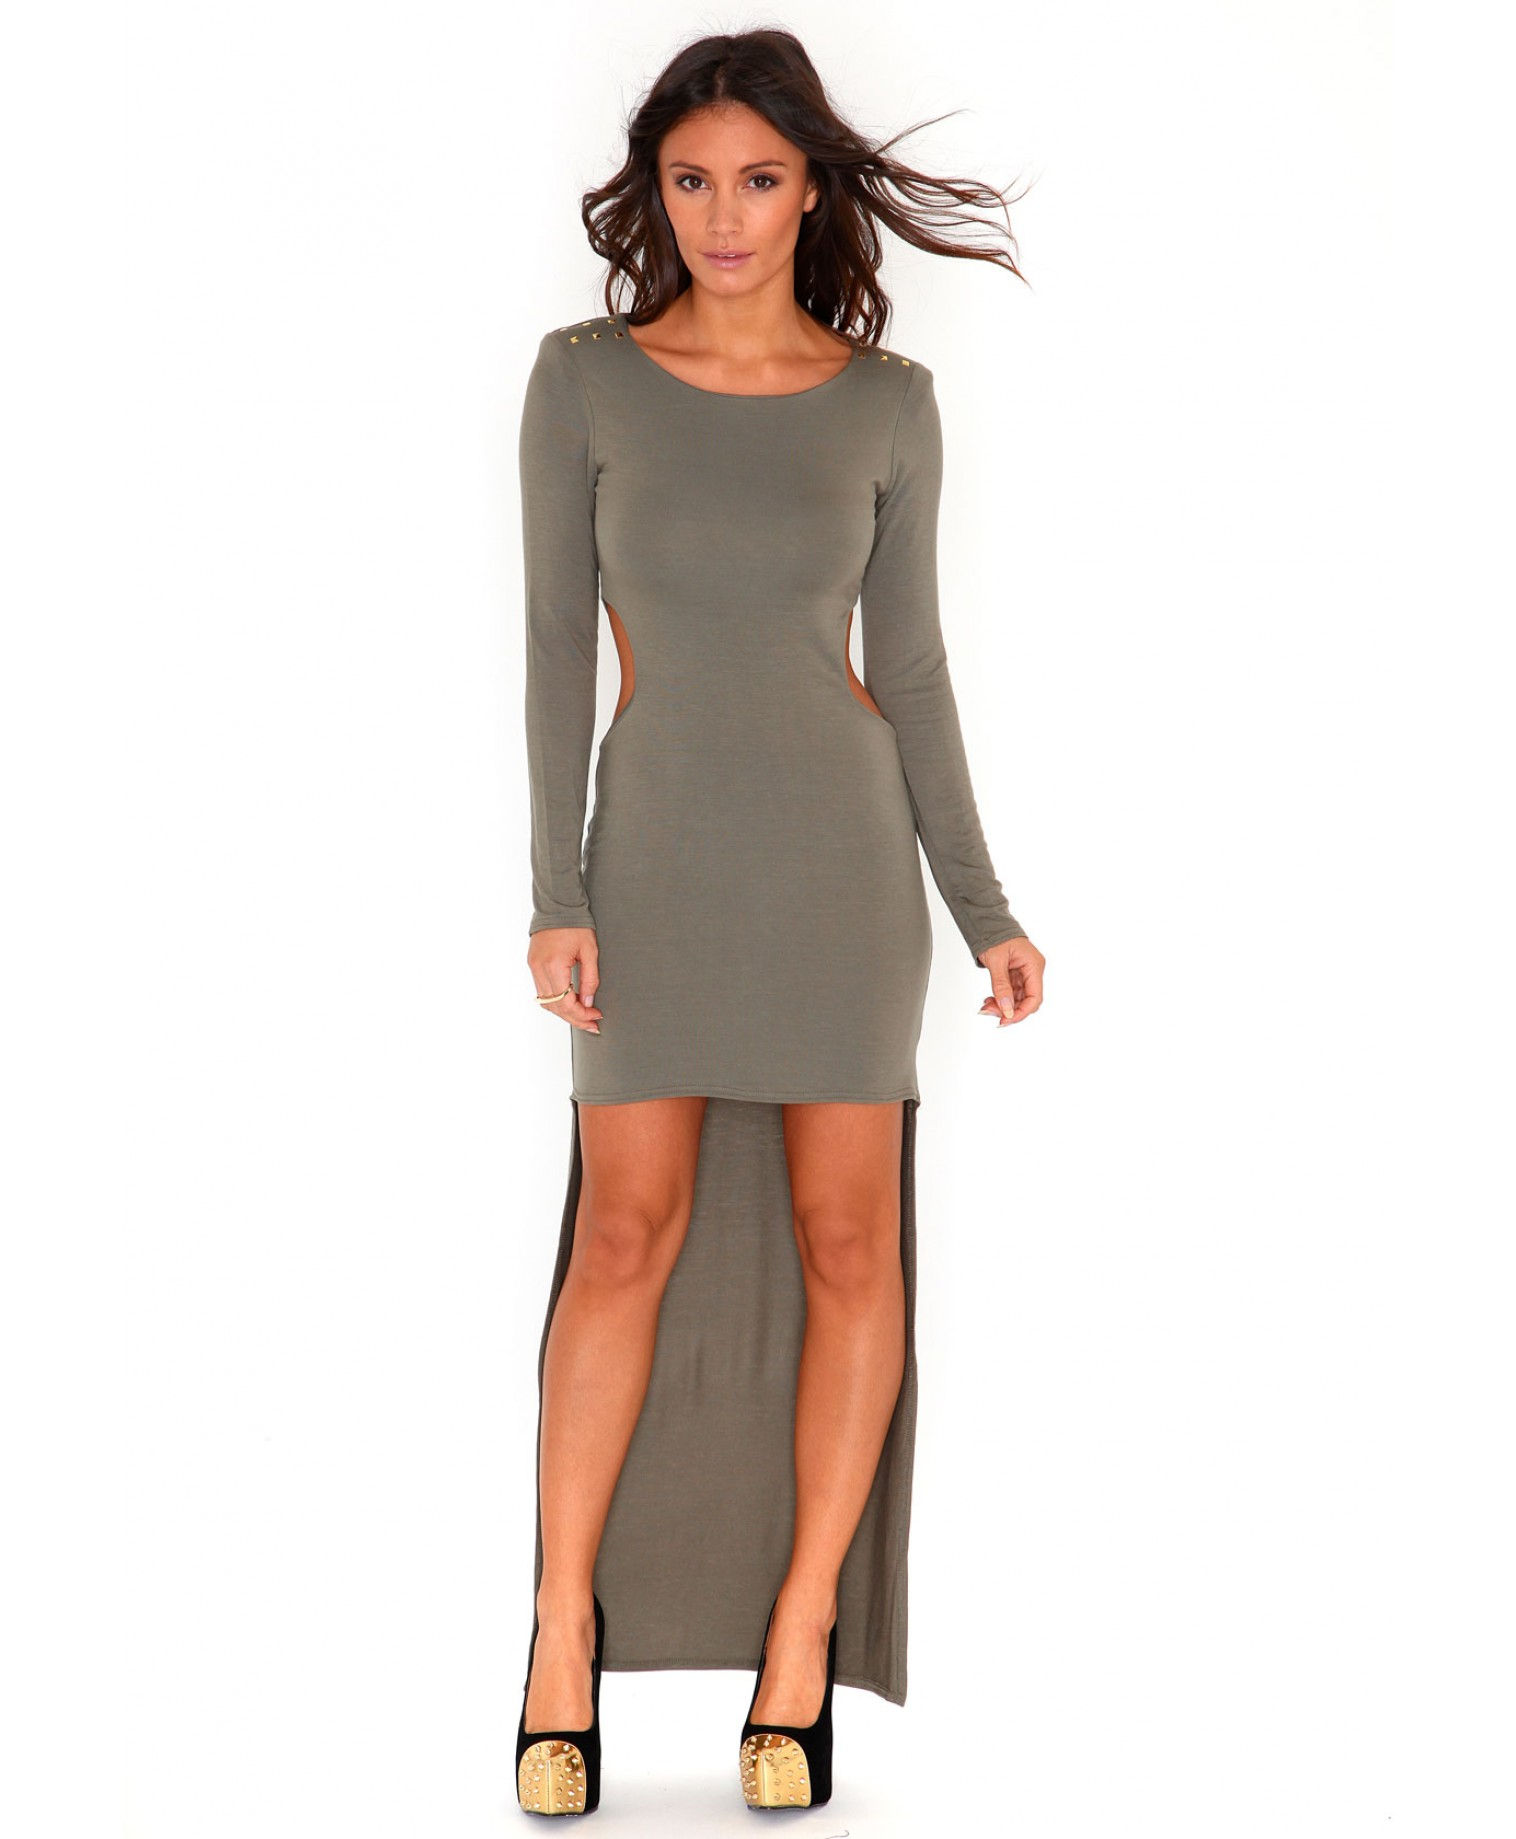 ASYMMETRIC DRESSES (39)